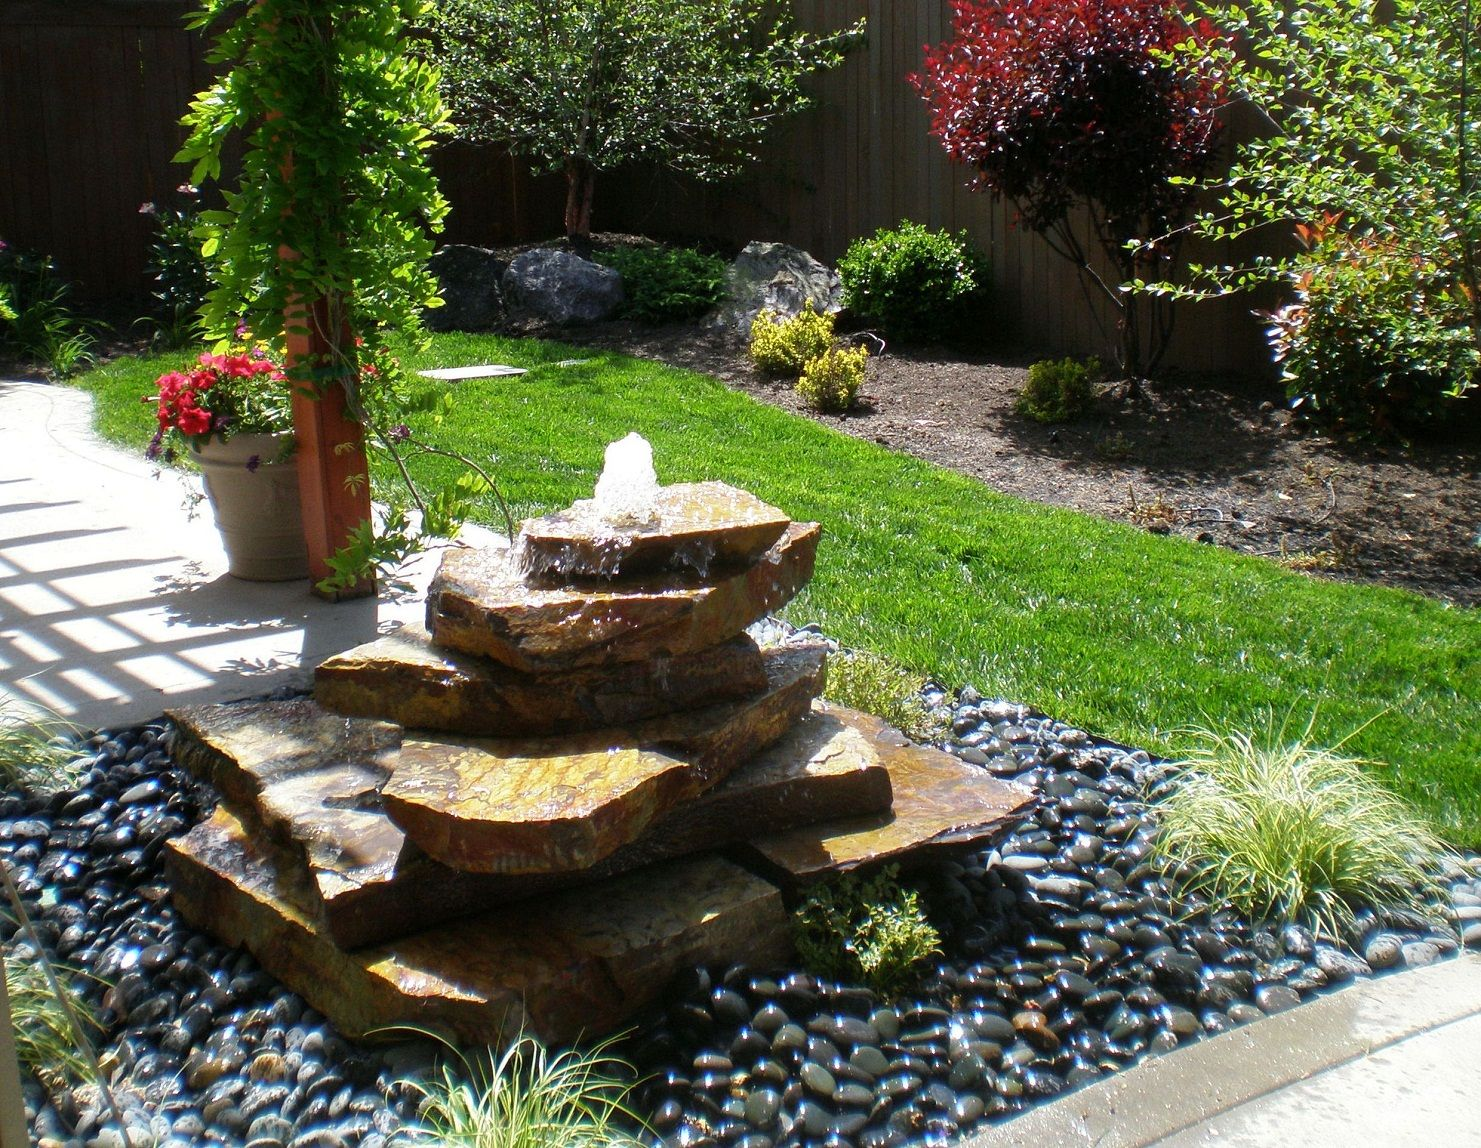 Charmant Cheap Stone Water Fountains For Backyard Garden